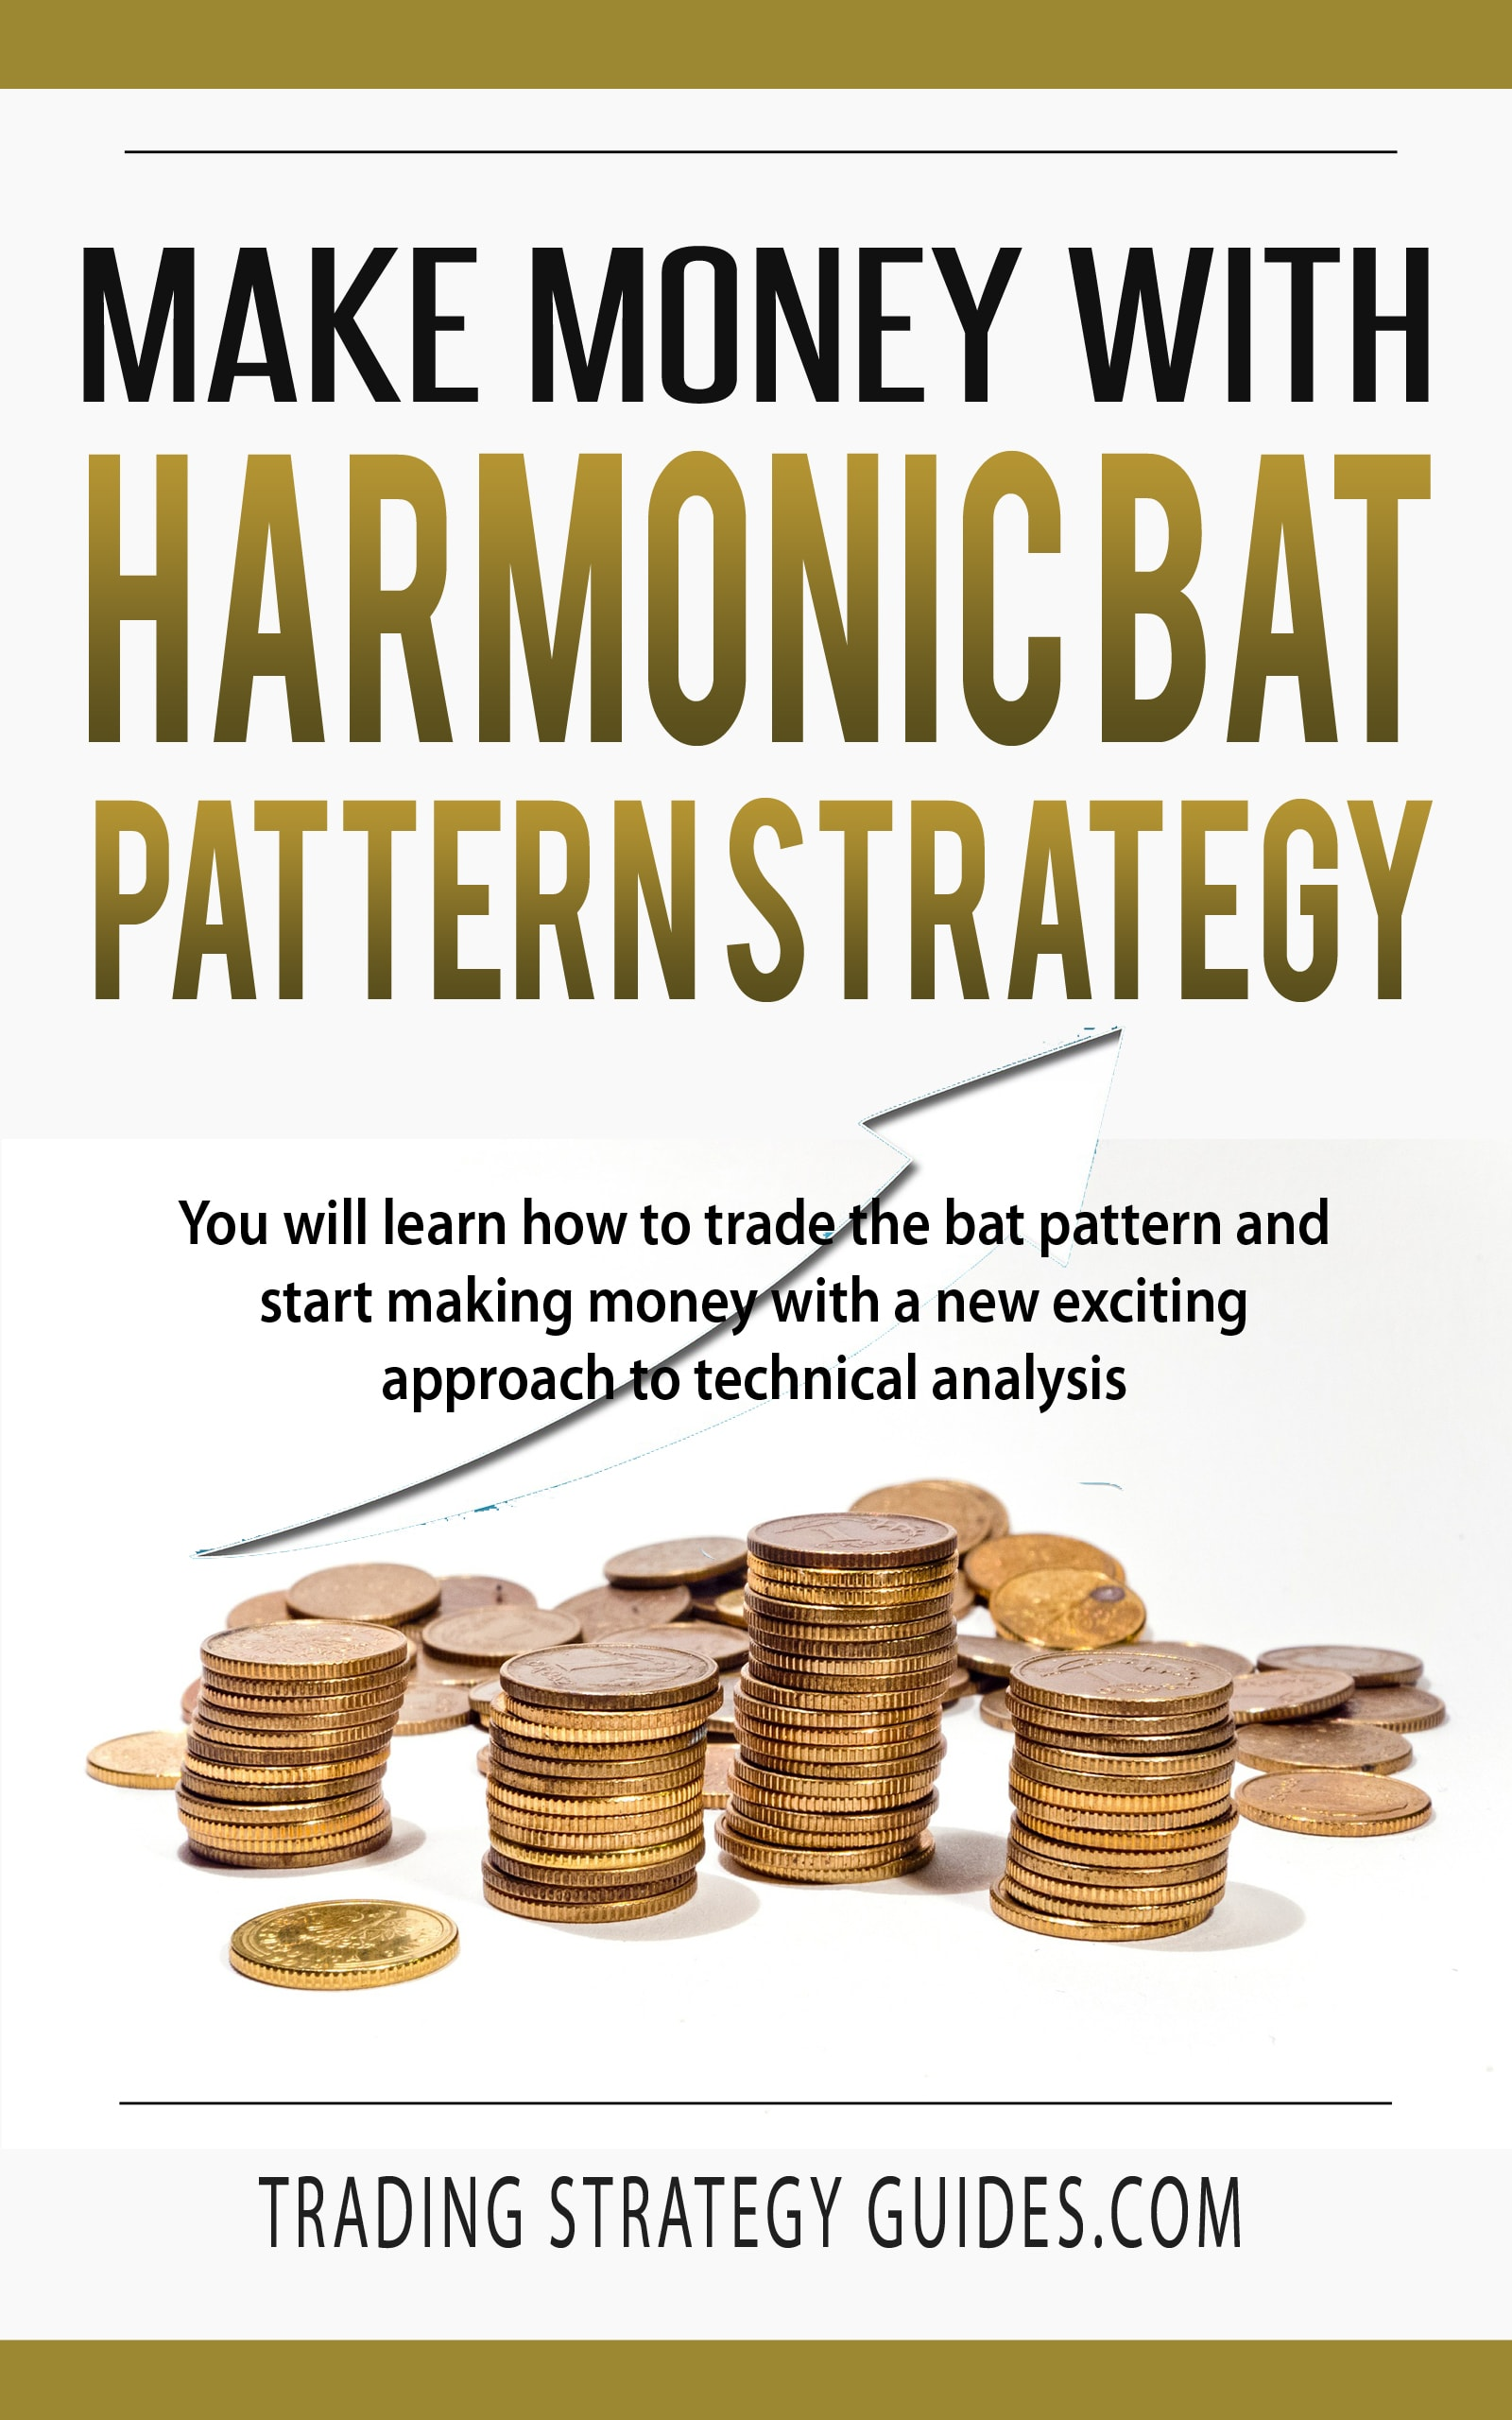 harmonic bat pattern strategy